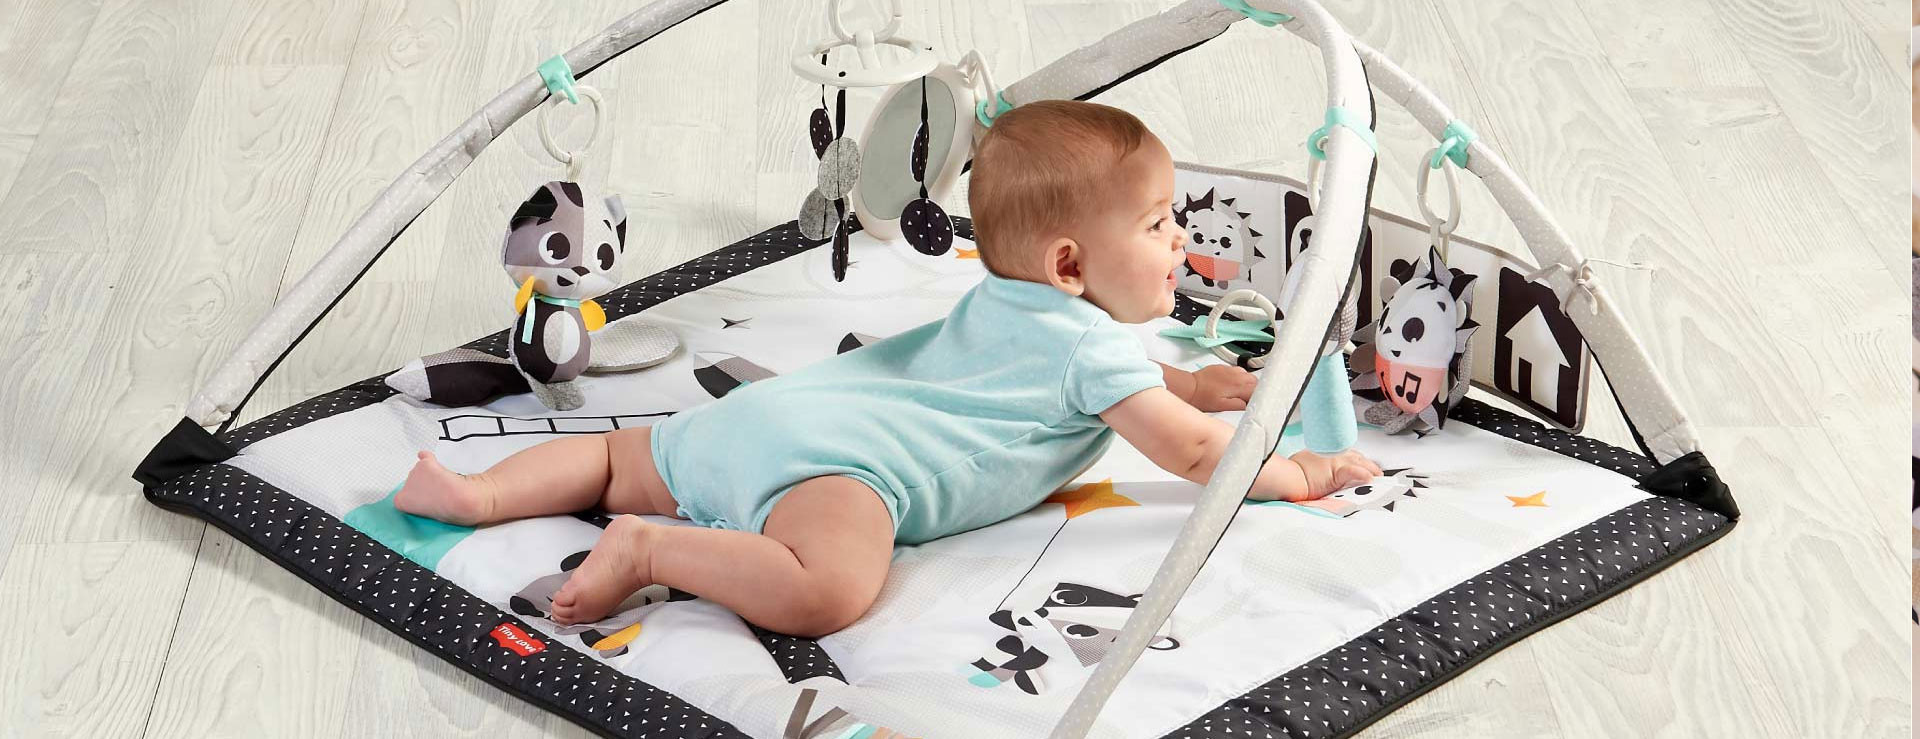 Open arches mode offers more space for tummy time